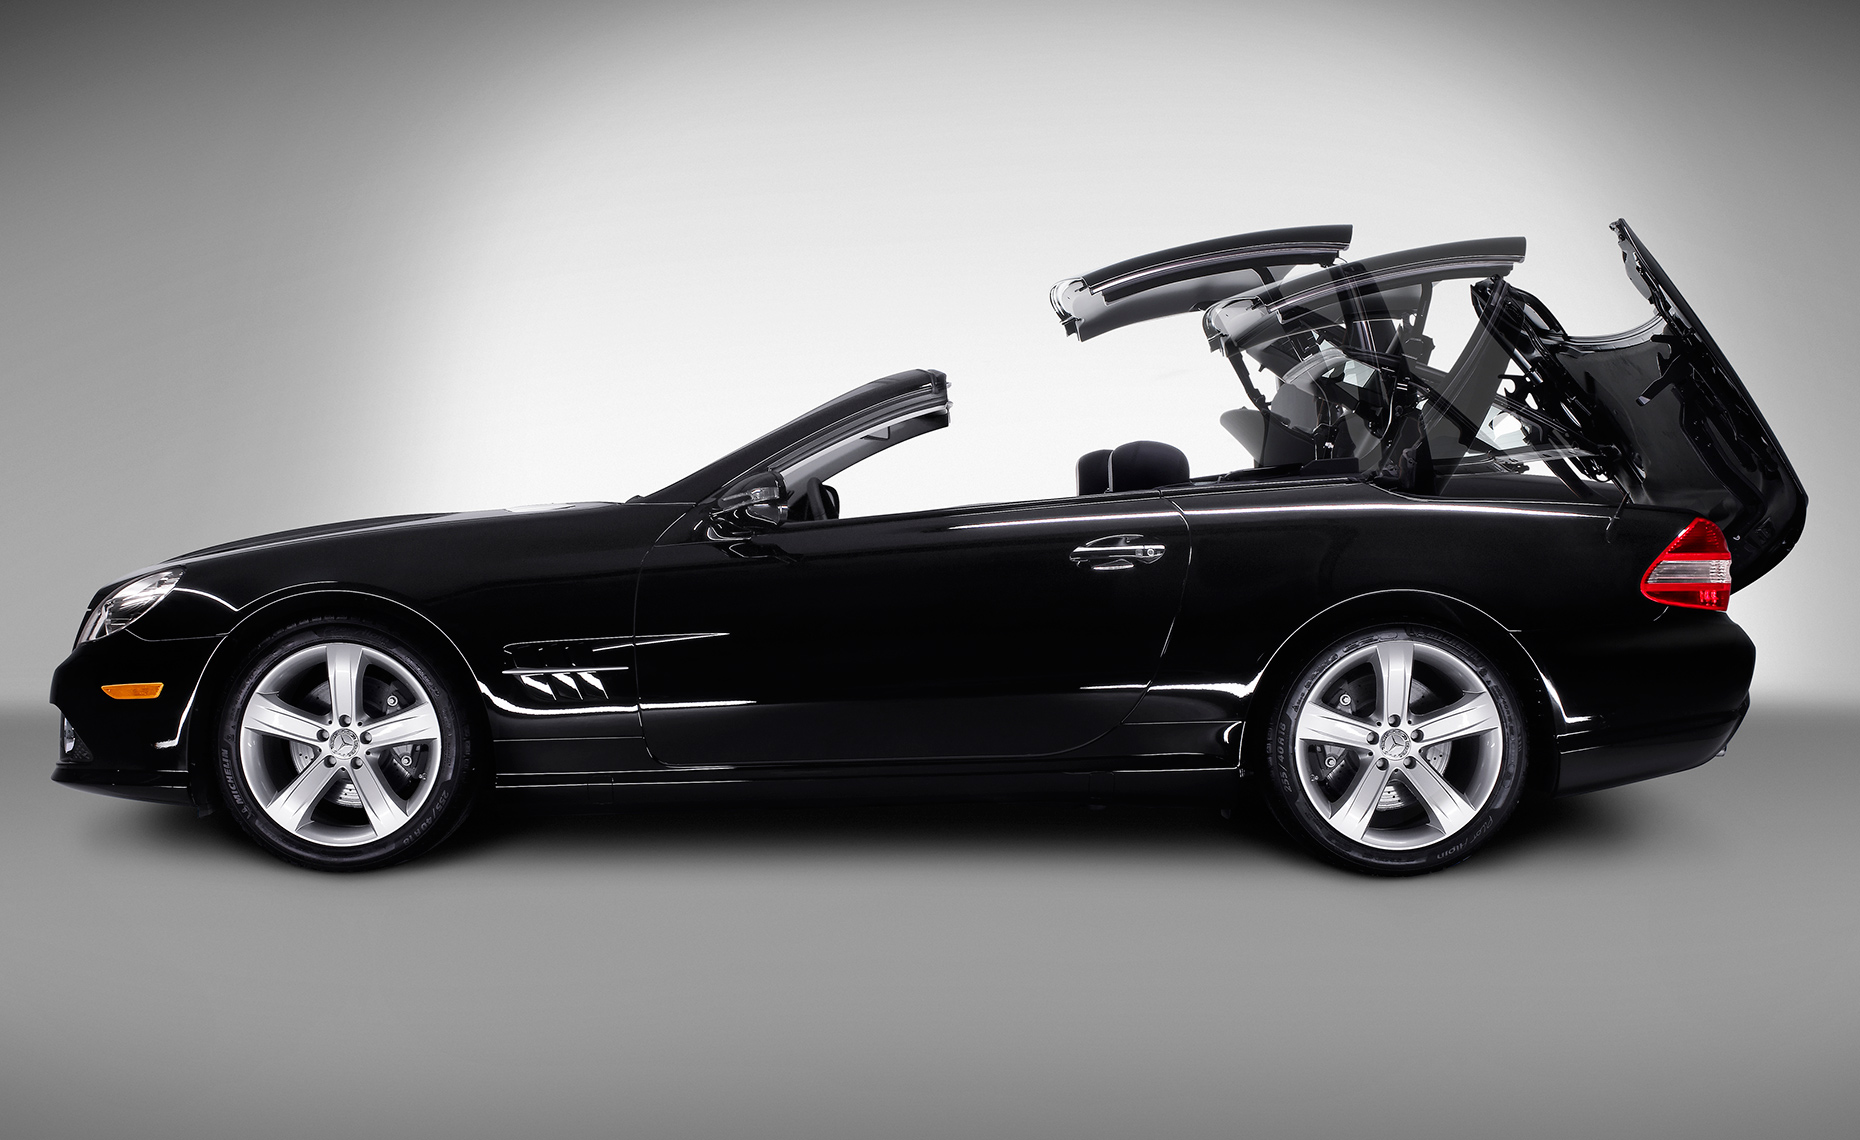 09-SL550-roof-operation